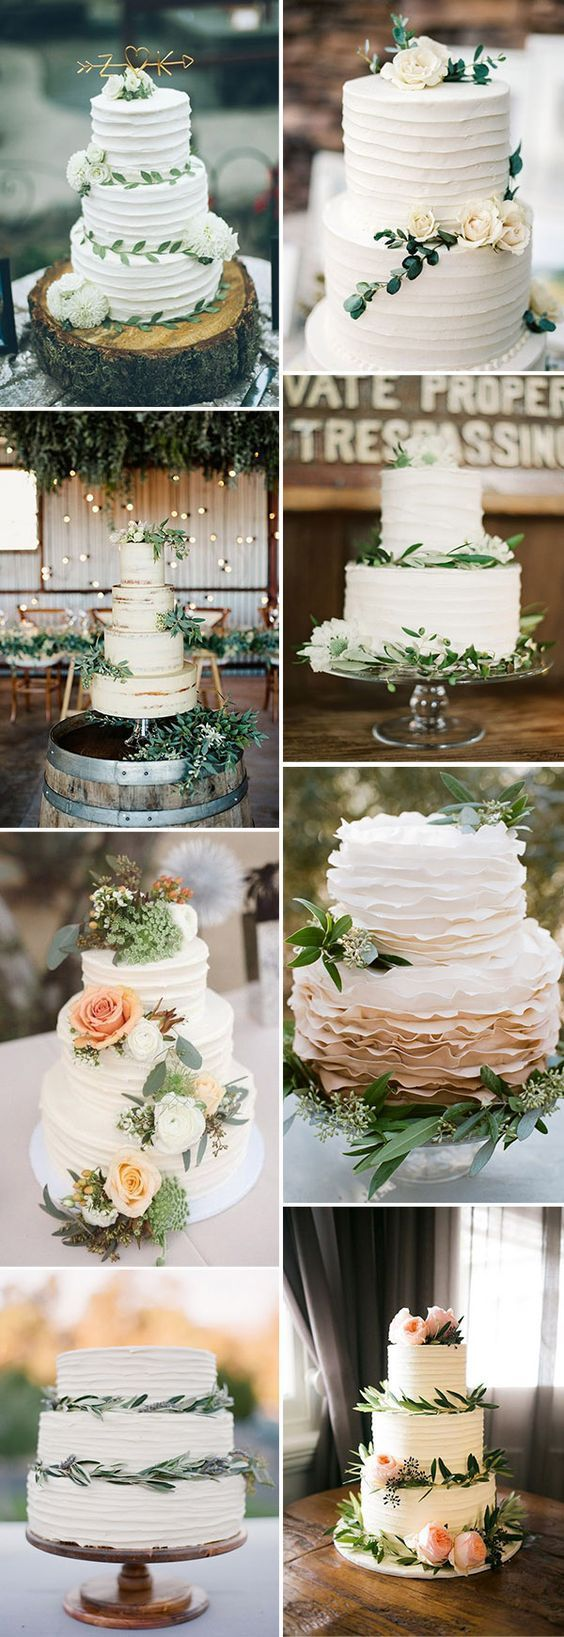 Teknos galambot eszik 96 - 50 Steal Worthy Wedding Cake Ideas For Your Special Day